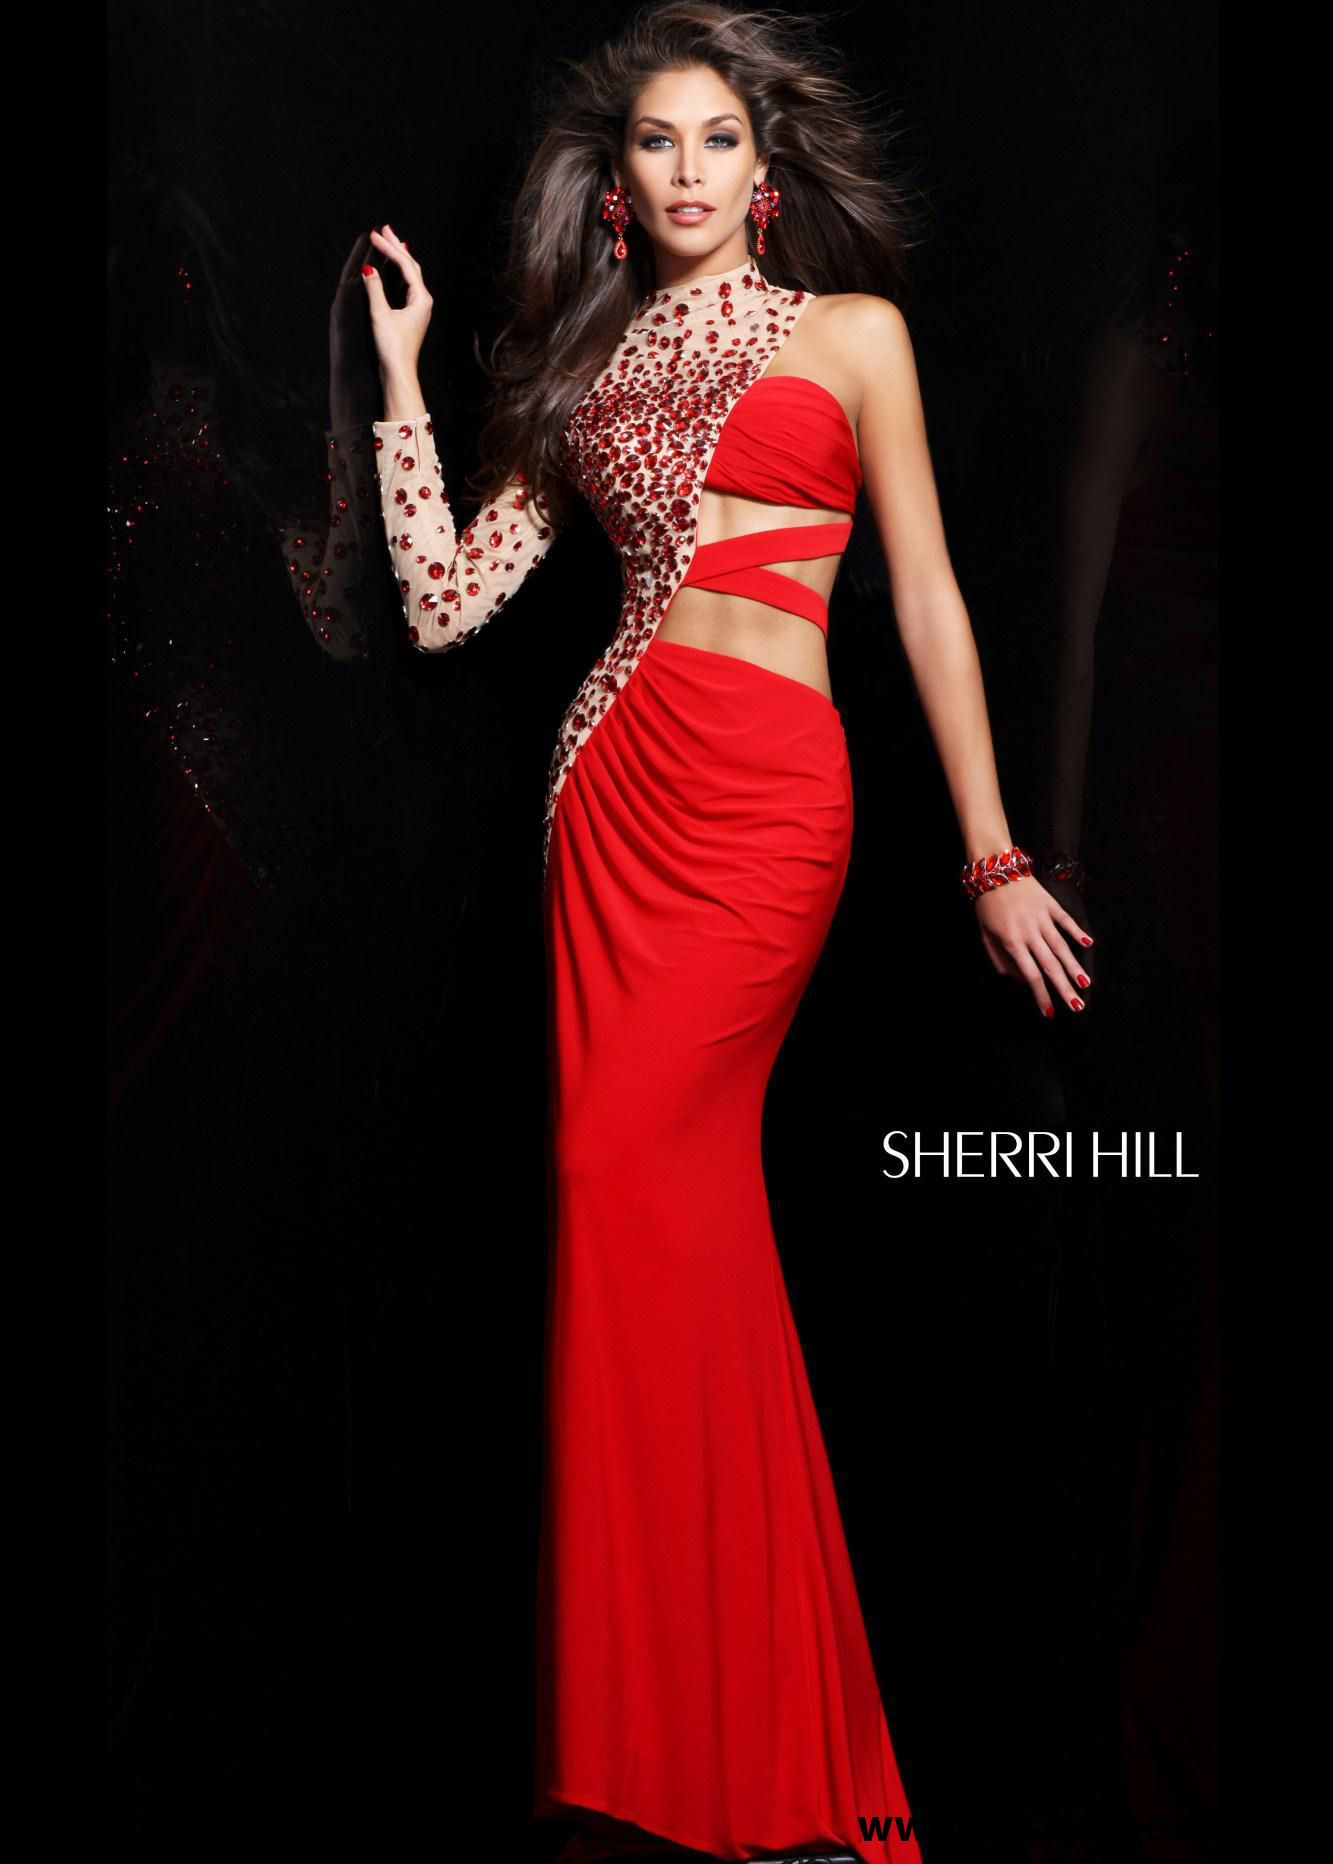 Find sherri hill red long sleeve beaded dresses at rissyroos